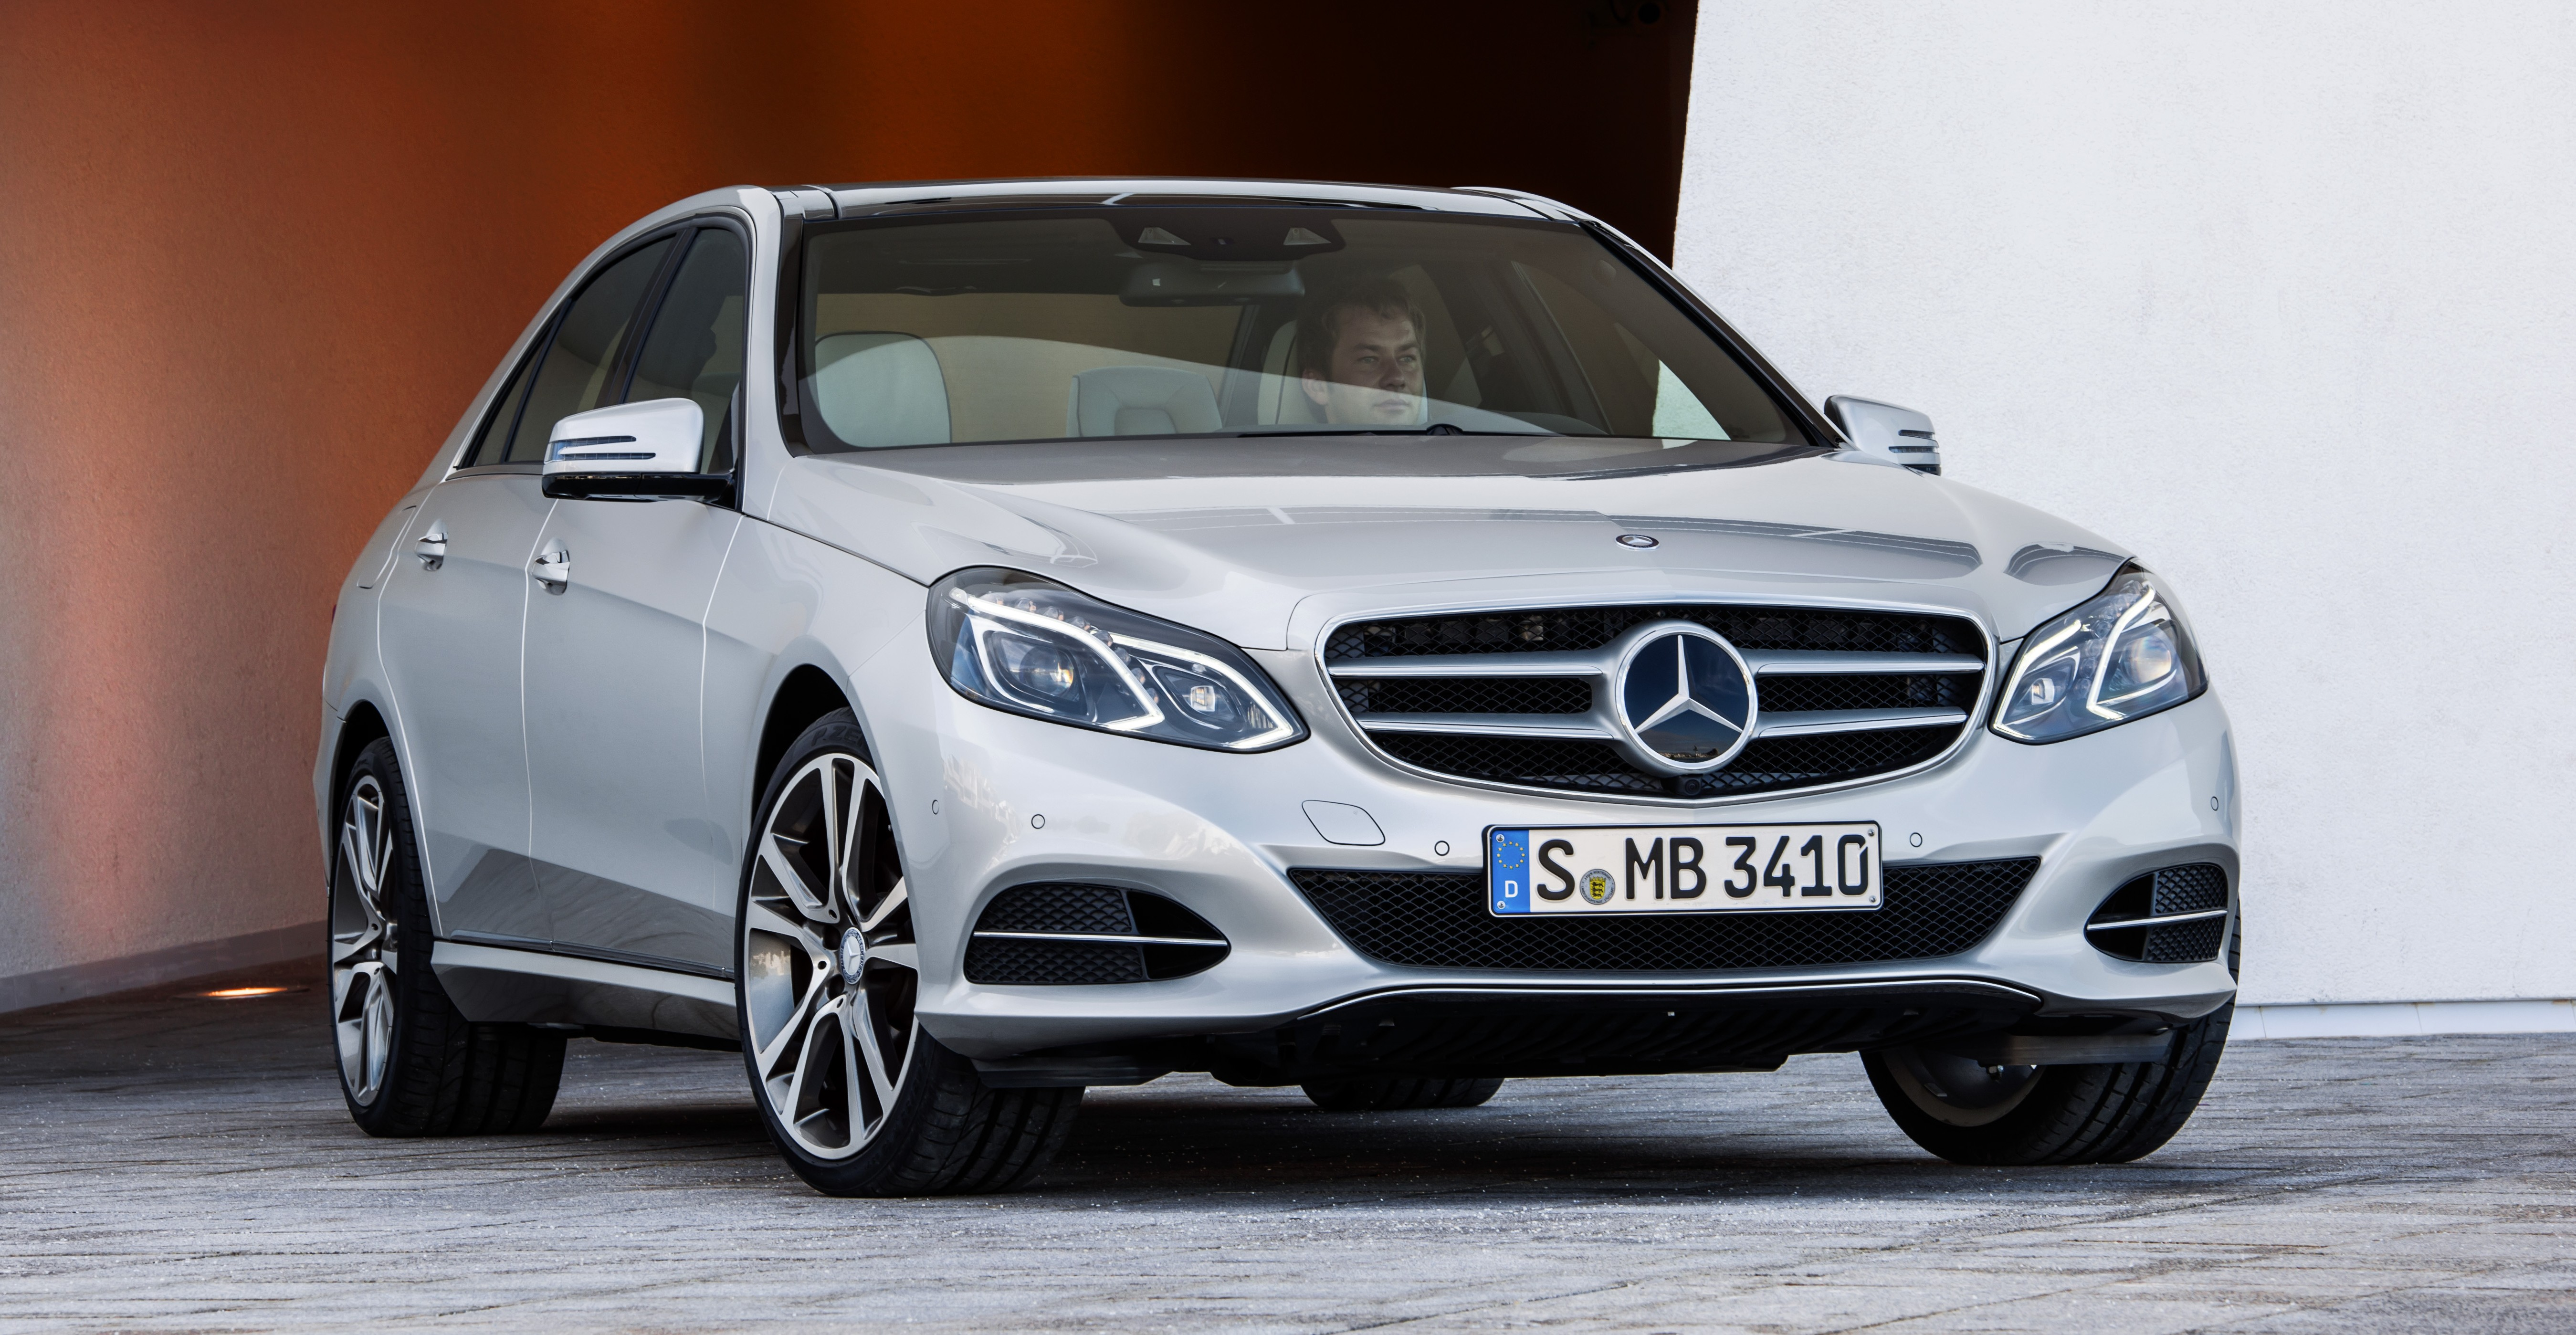 w212 mercedes benz e class facelift unveiled. Black Bedroom Furniture Sets. Home Design Ideas